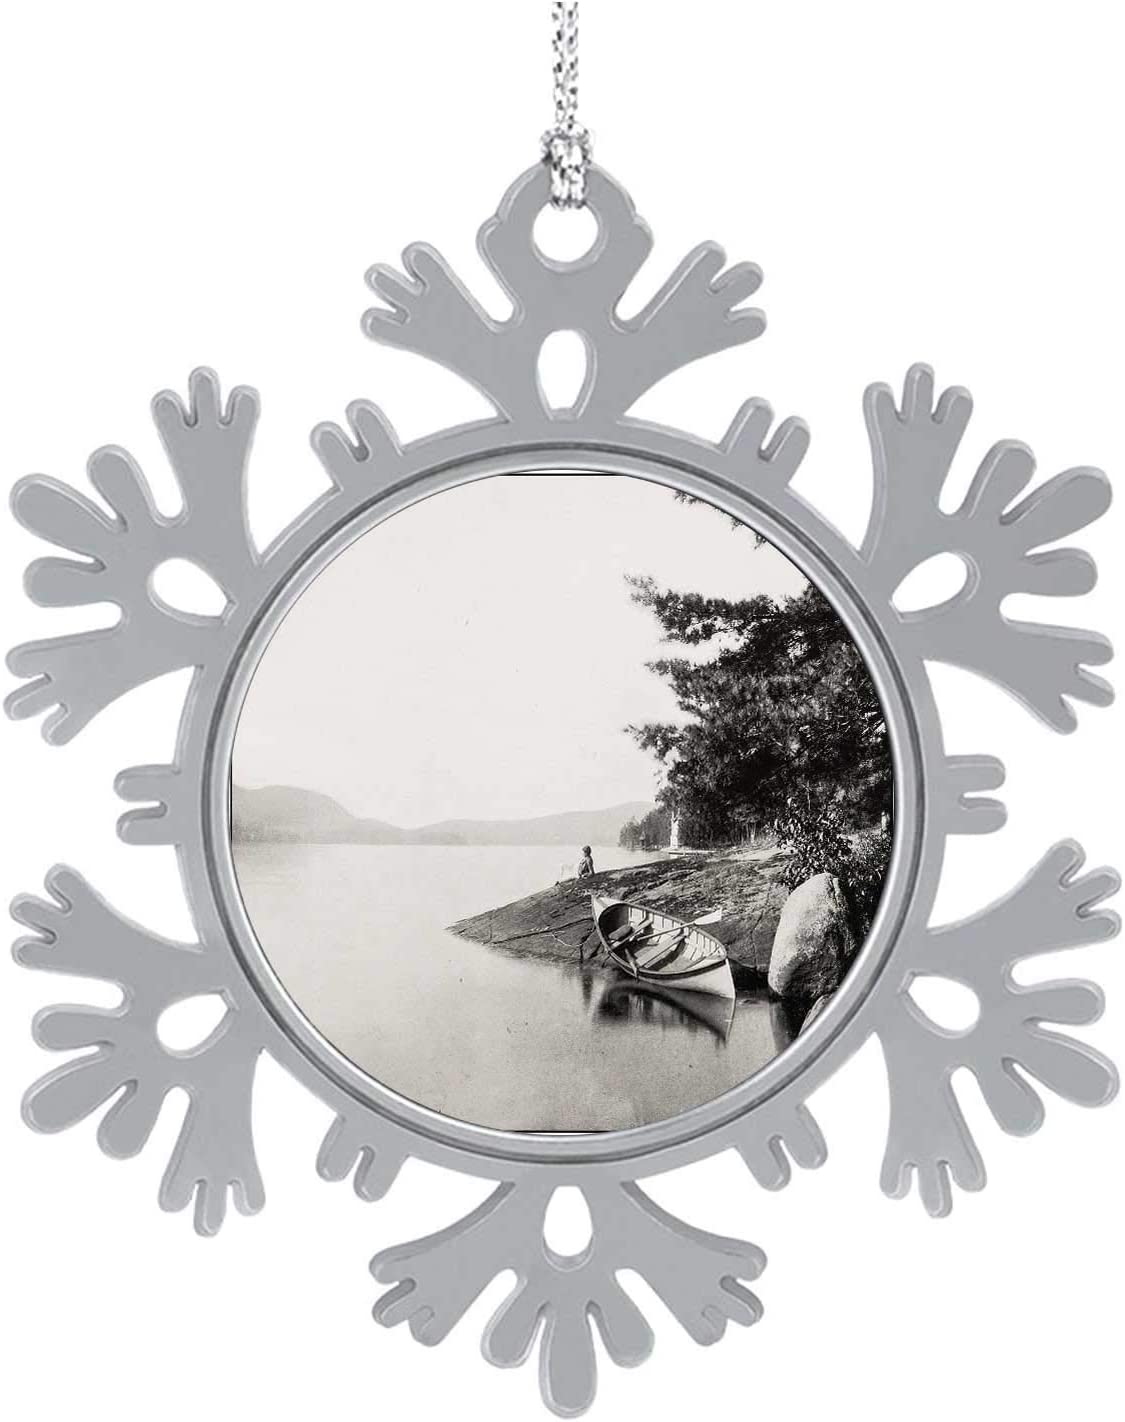 Antique Graph of Lake George USA,Cute 2020 Home Décor Hanging Snowflake Decorations Ornament t Old-Fashioned 5PCS